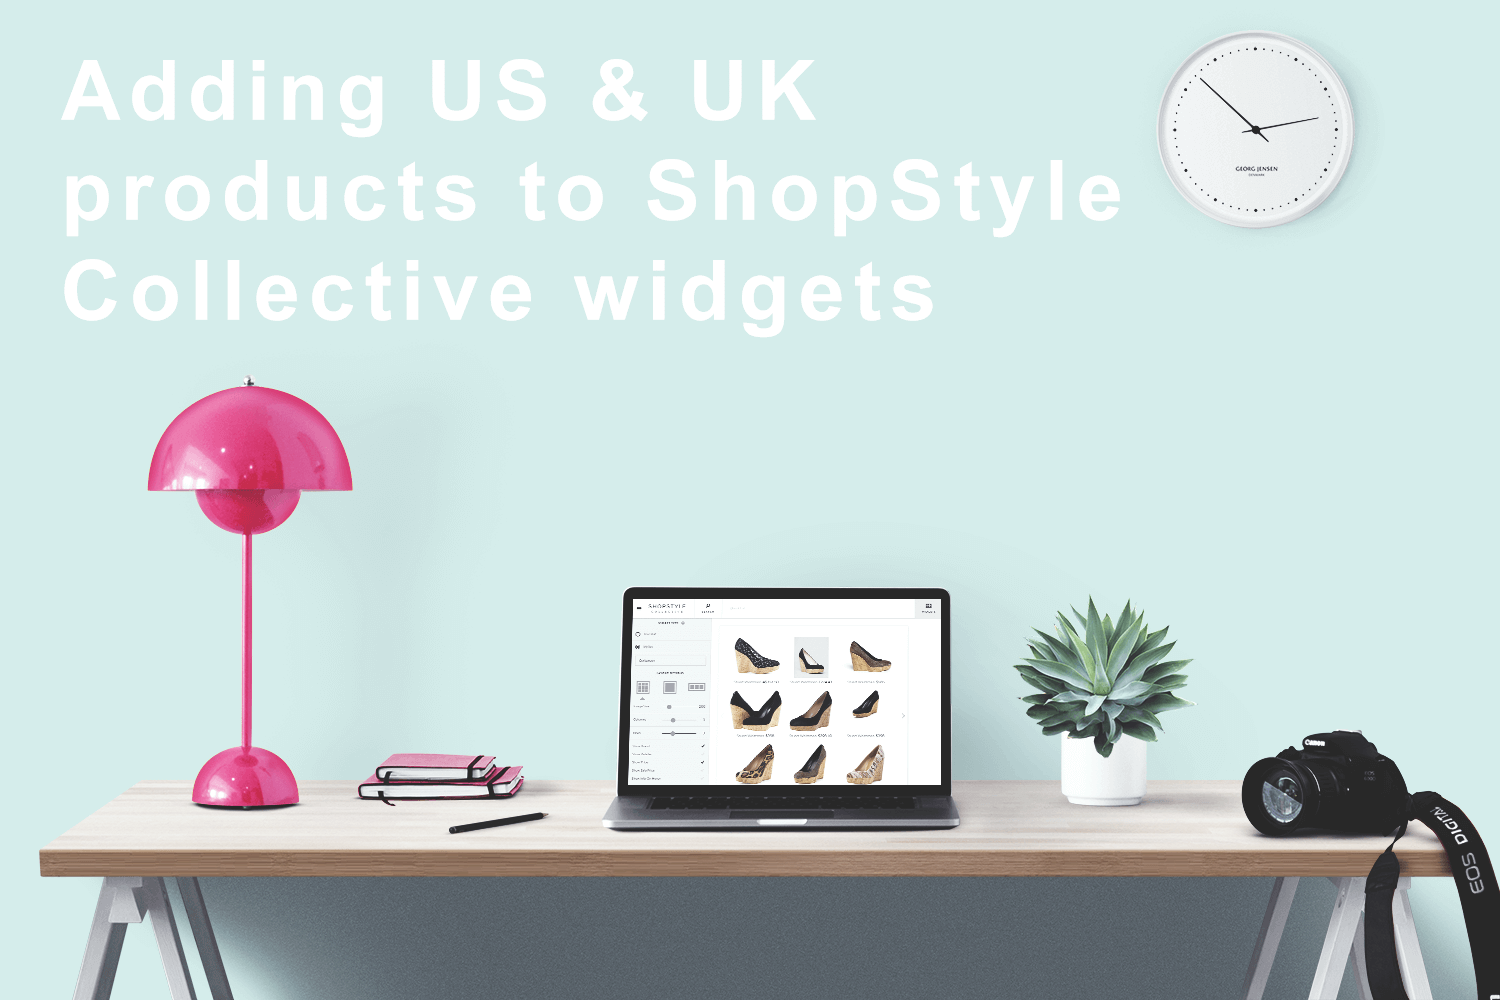 Adding US and UK products to your ShopStyle Collective Widgets